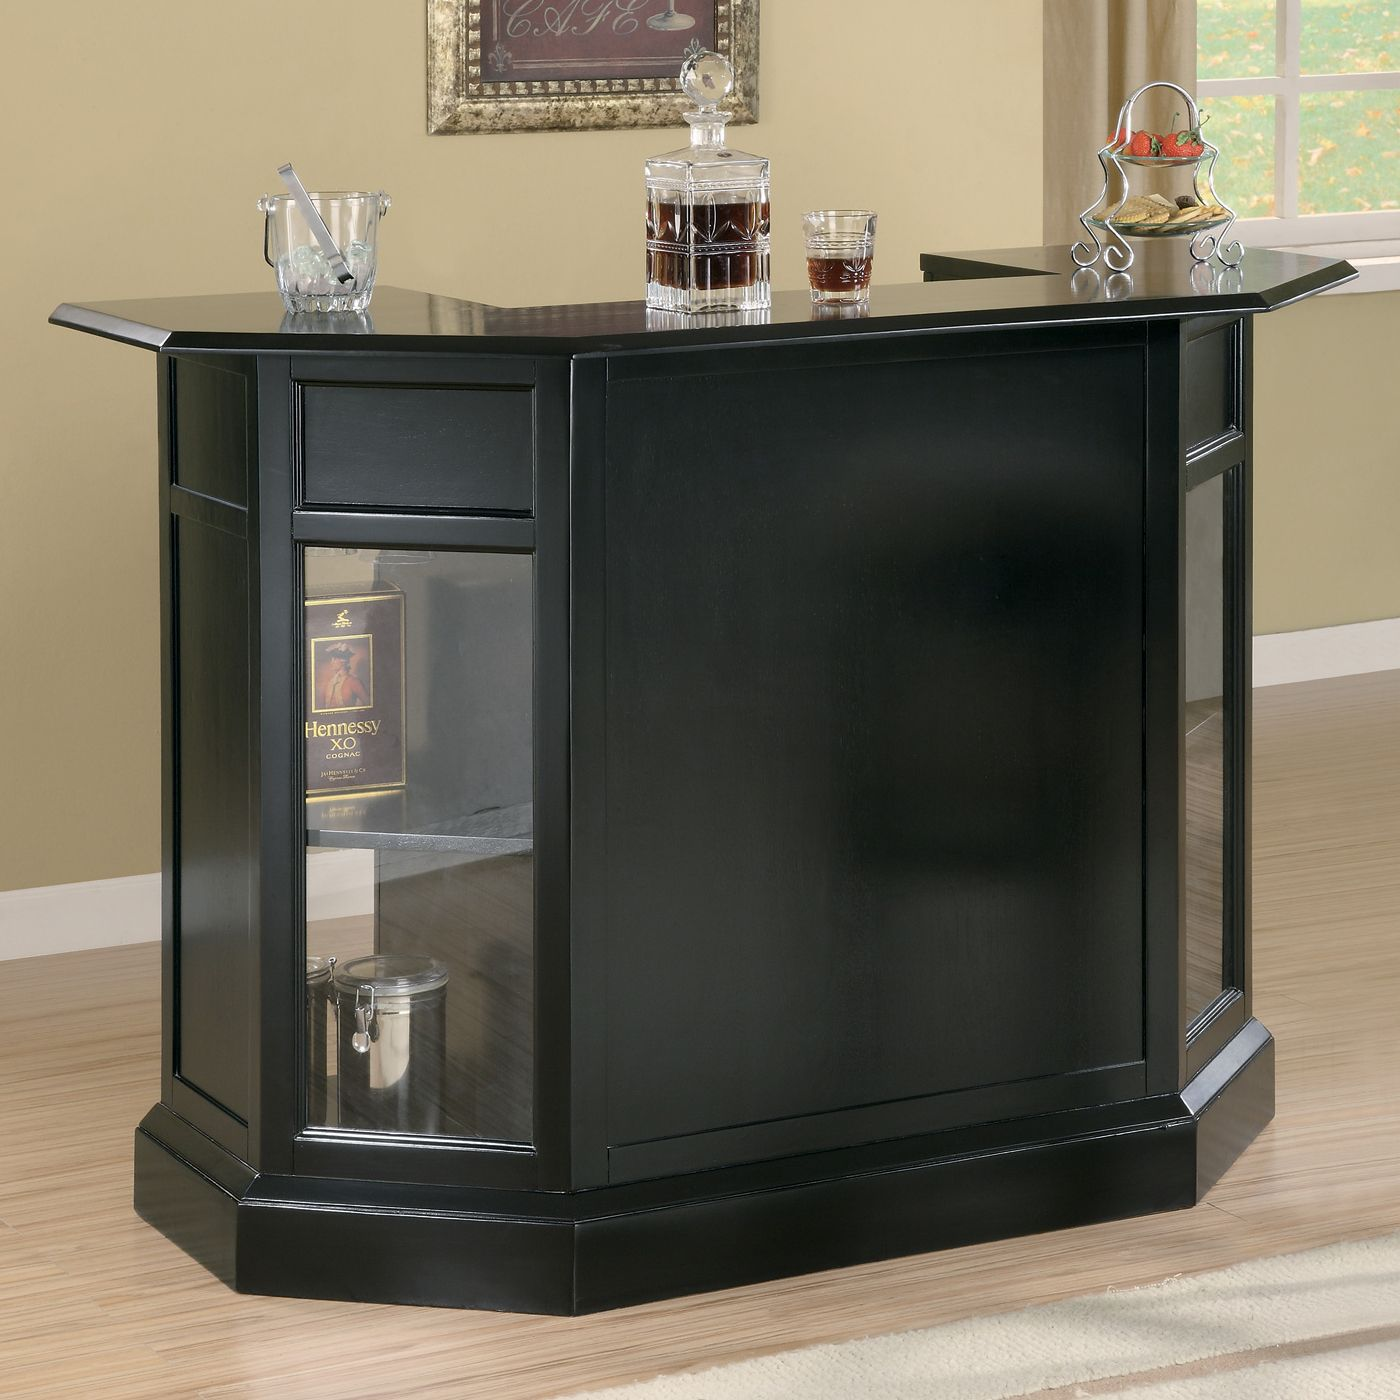 Delightful Coaster Fine Furniture Modern Bar Unit | ATG Stores